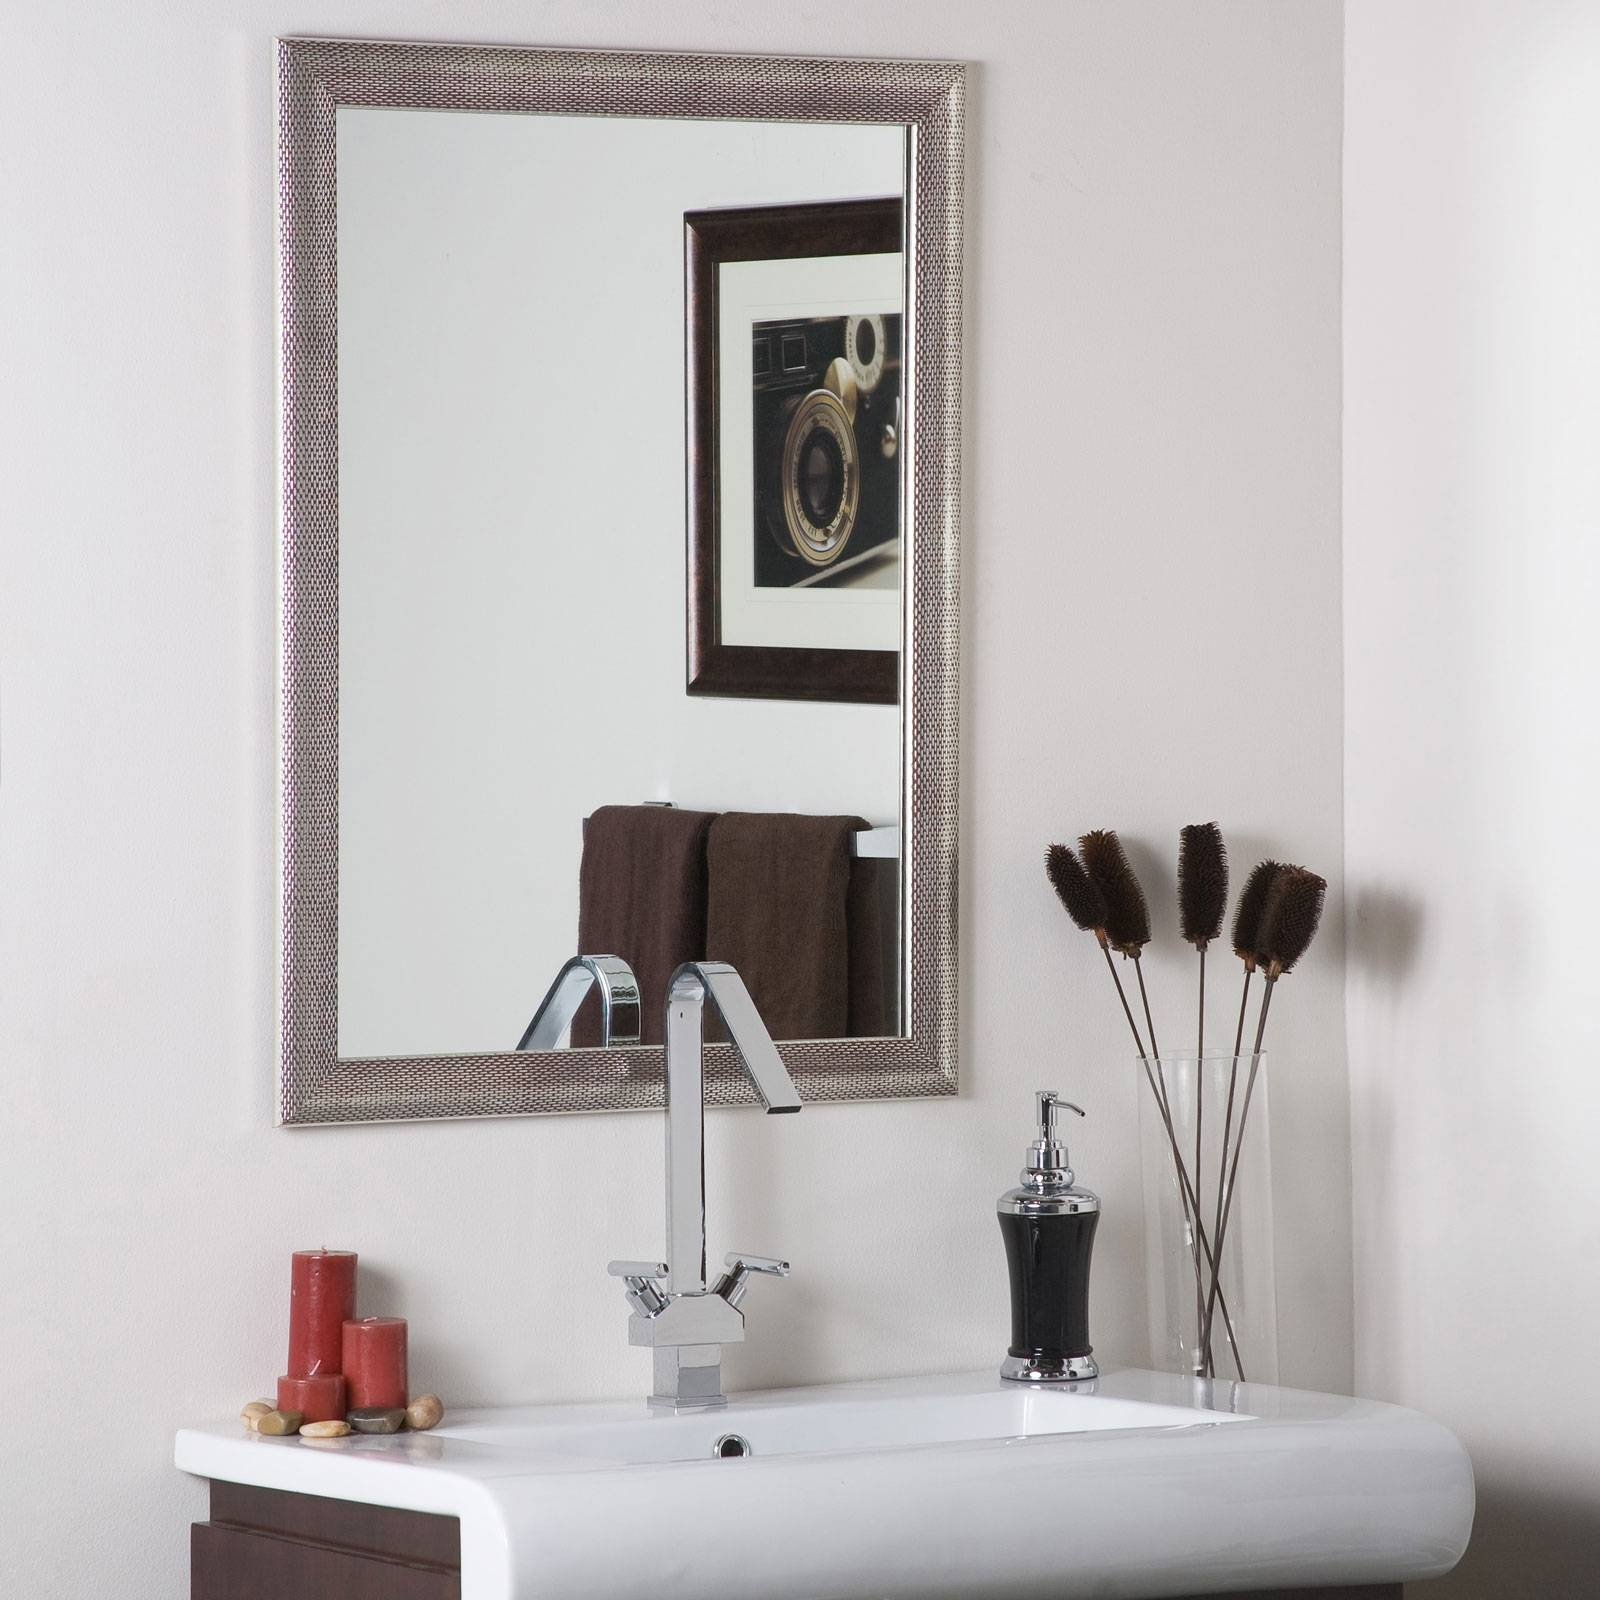 Classy Warm Silver Wall Art For Bathroom — Home Design Stylinghome With Regard To Most Up To Date Classy Wall Art (View 9 of 15)